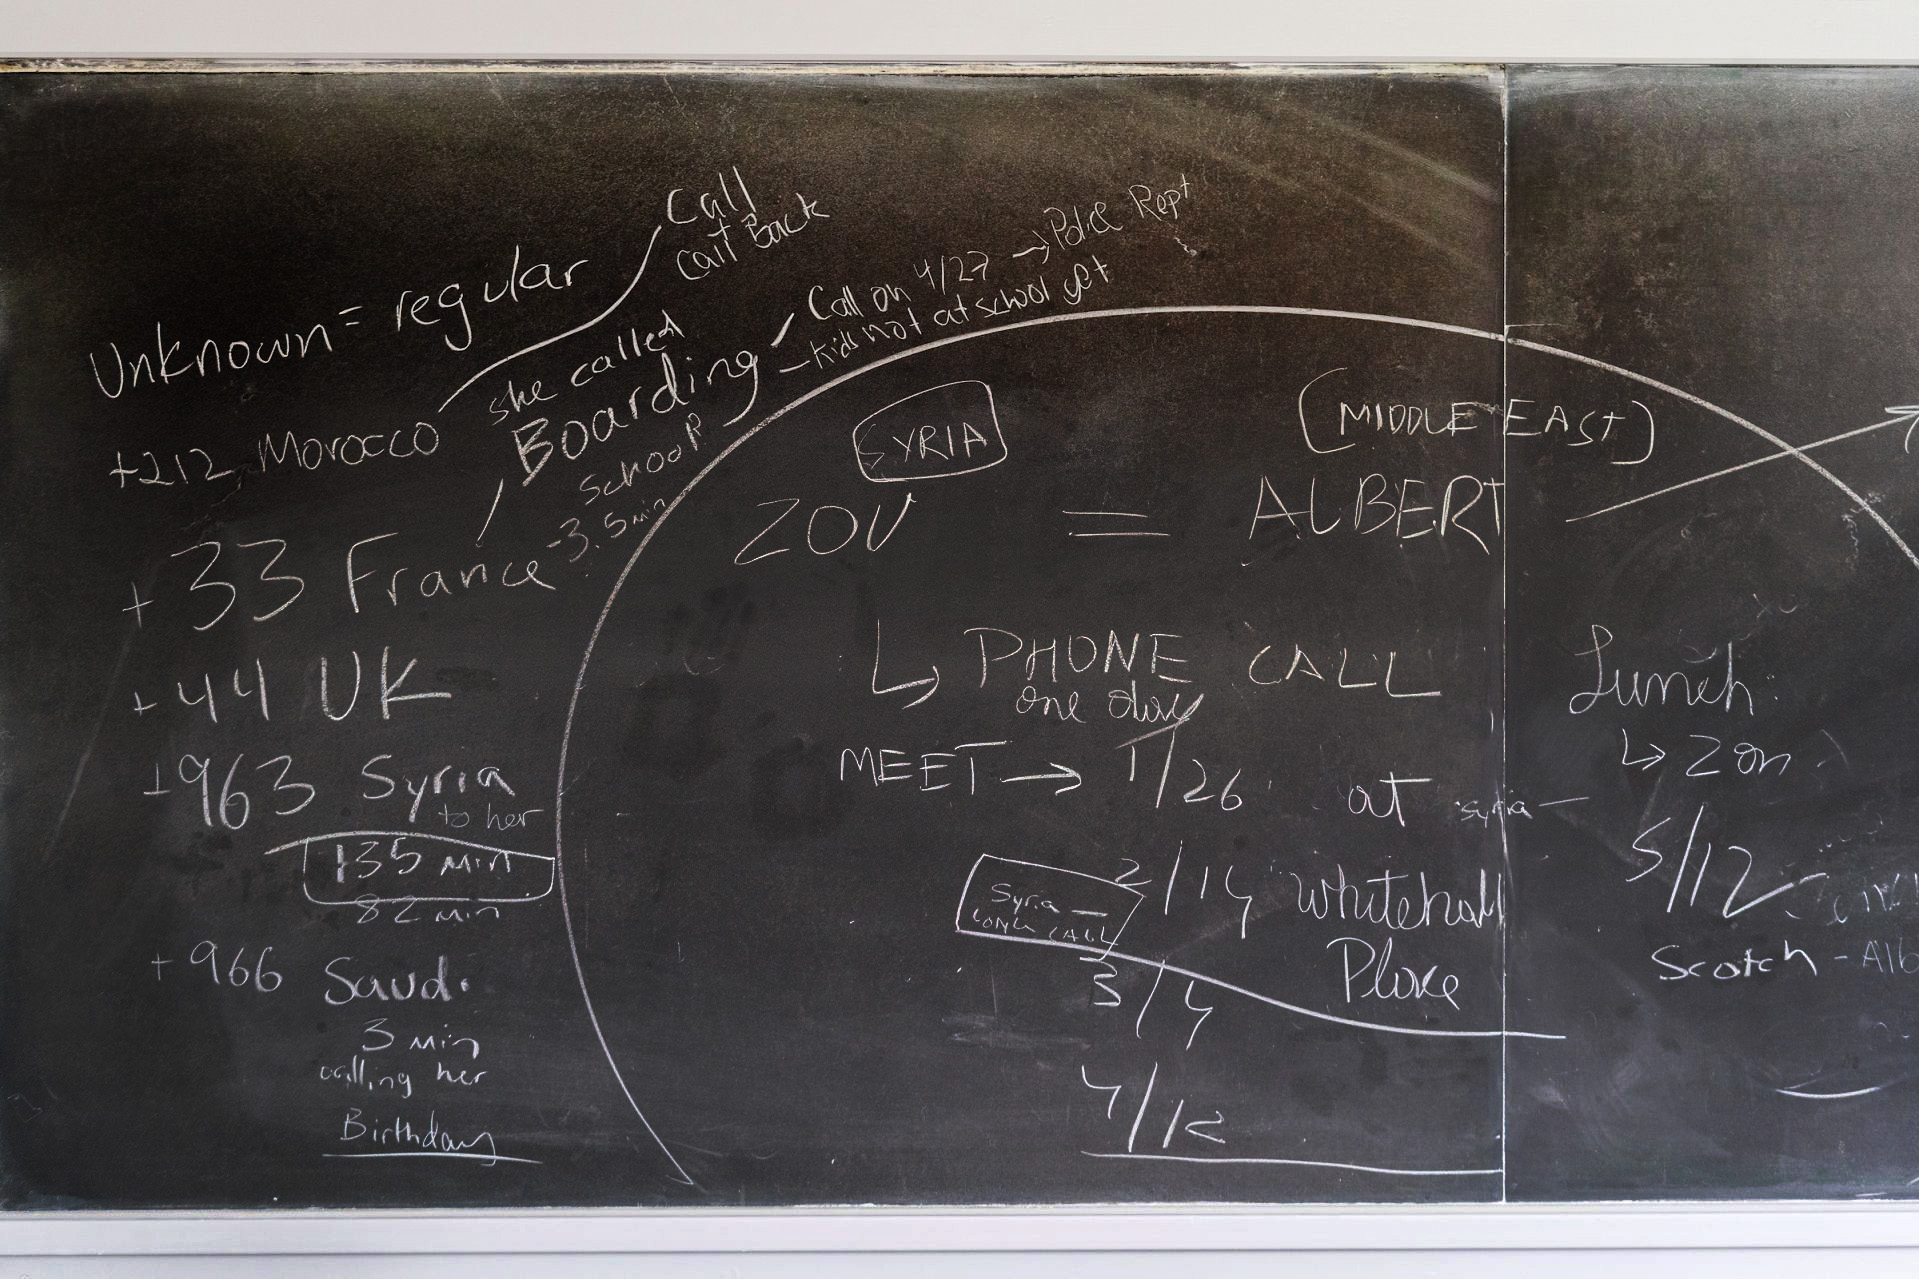 One mole-hunting group made use of the blackboard, plotting out dates, times, and locations. (Theophil Syslo/Bates College)